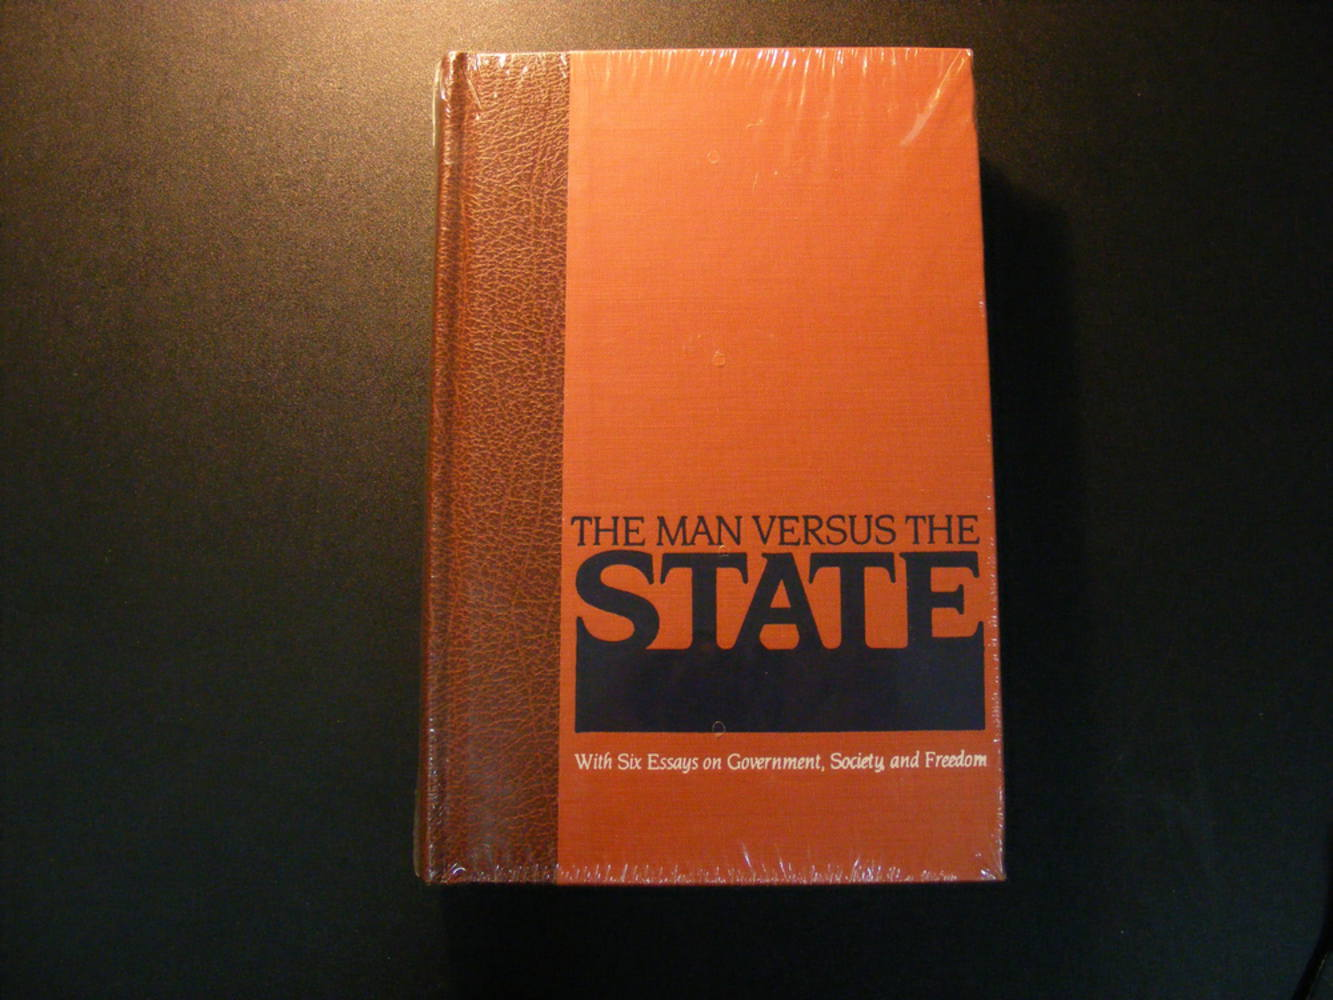 The Man Versus the State: With Six Essays on Government, Society and Freedom